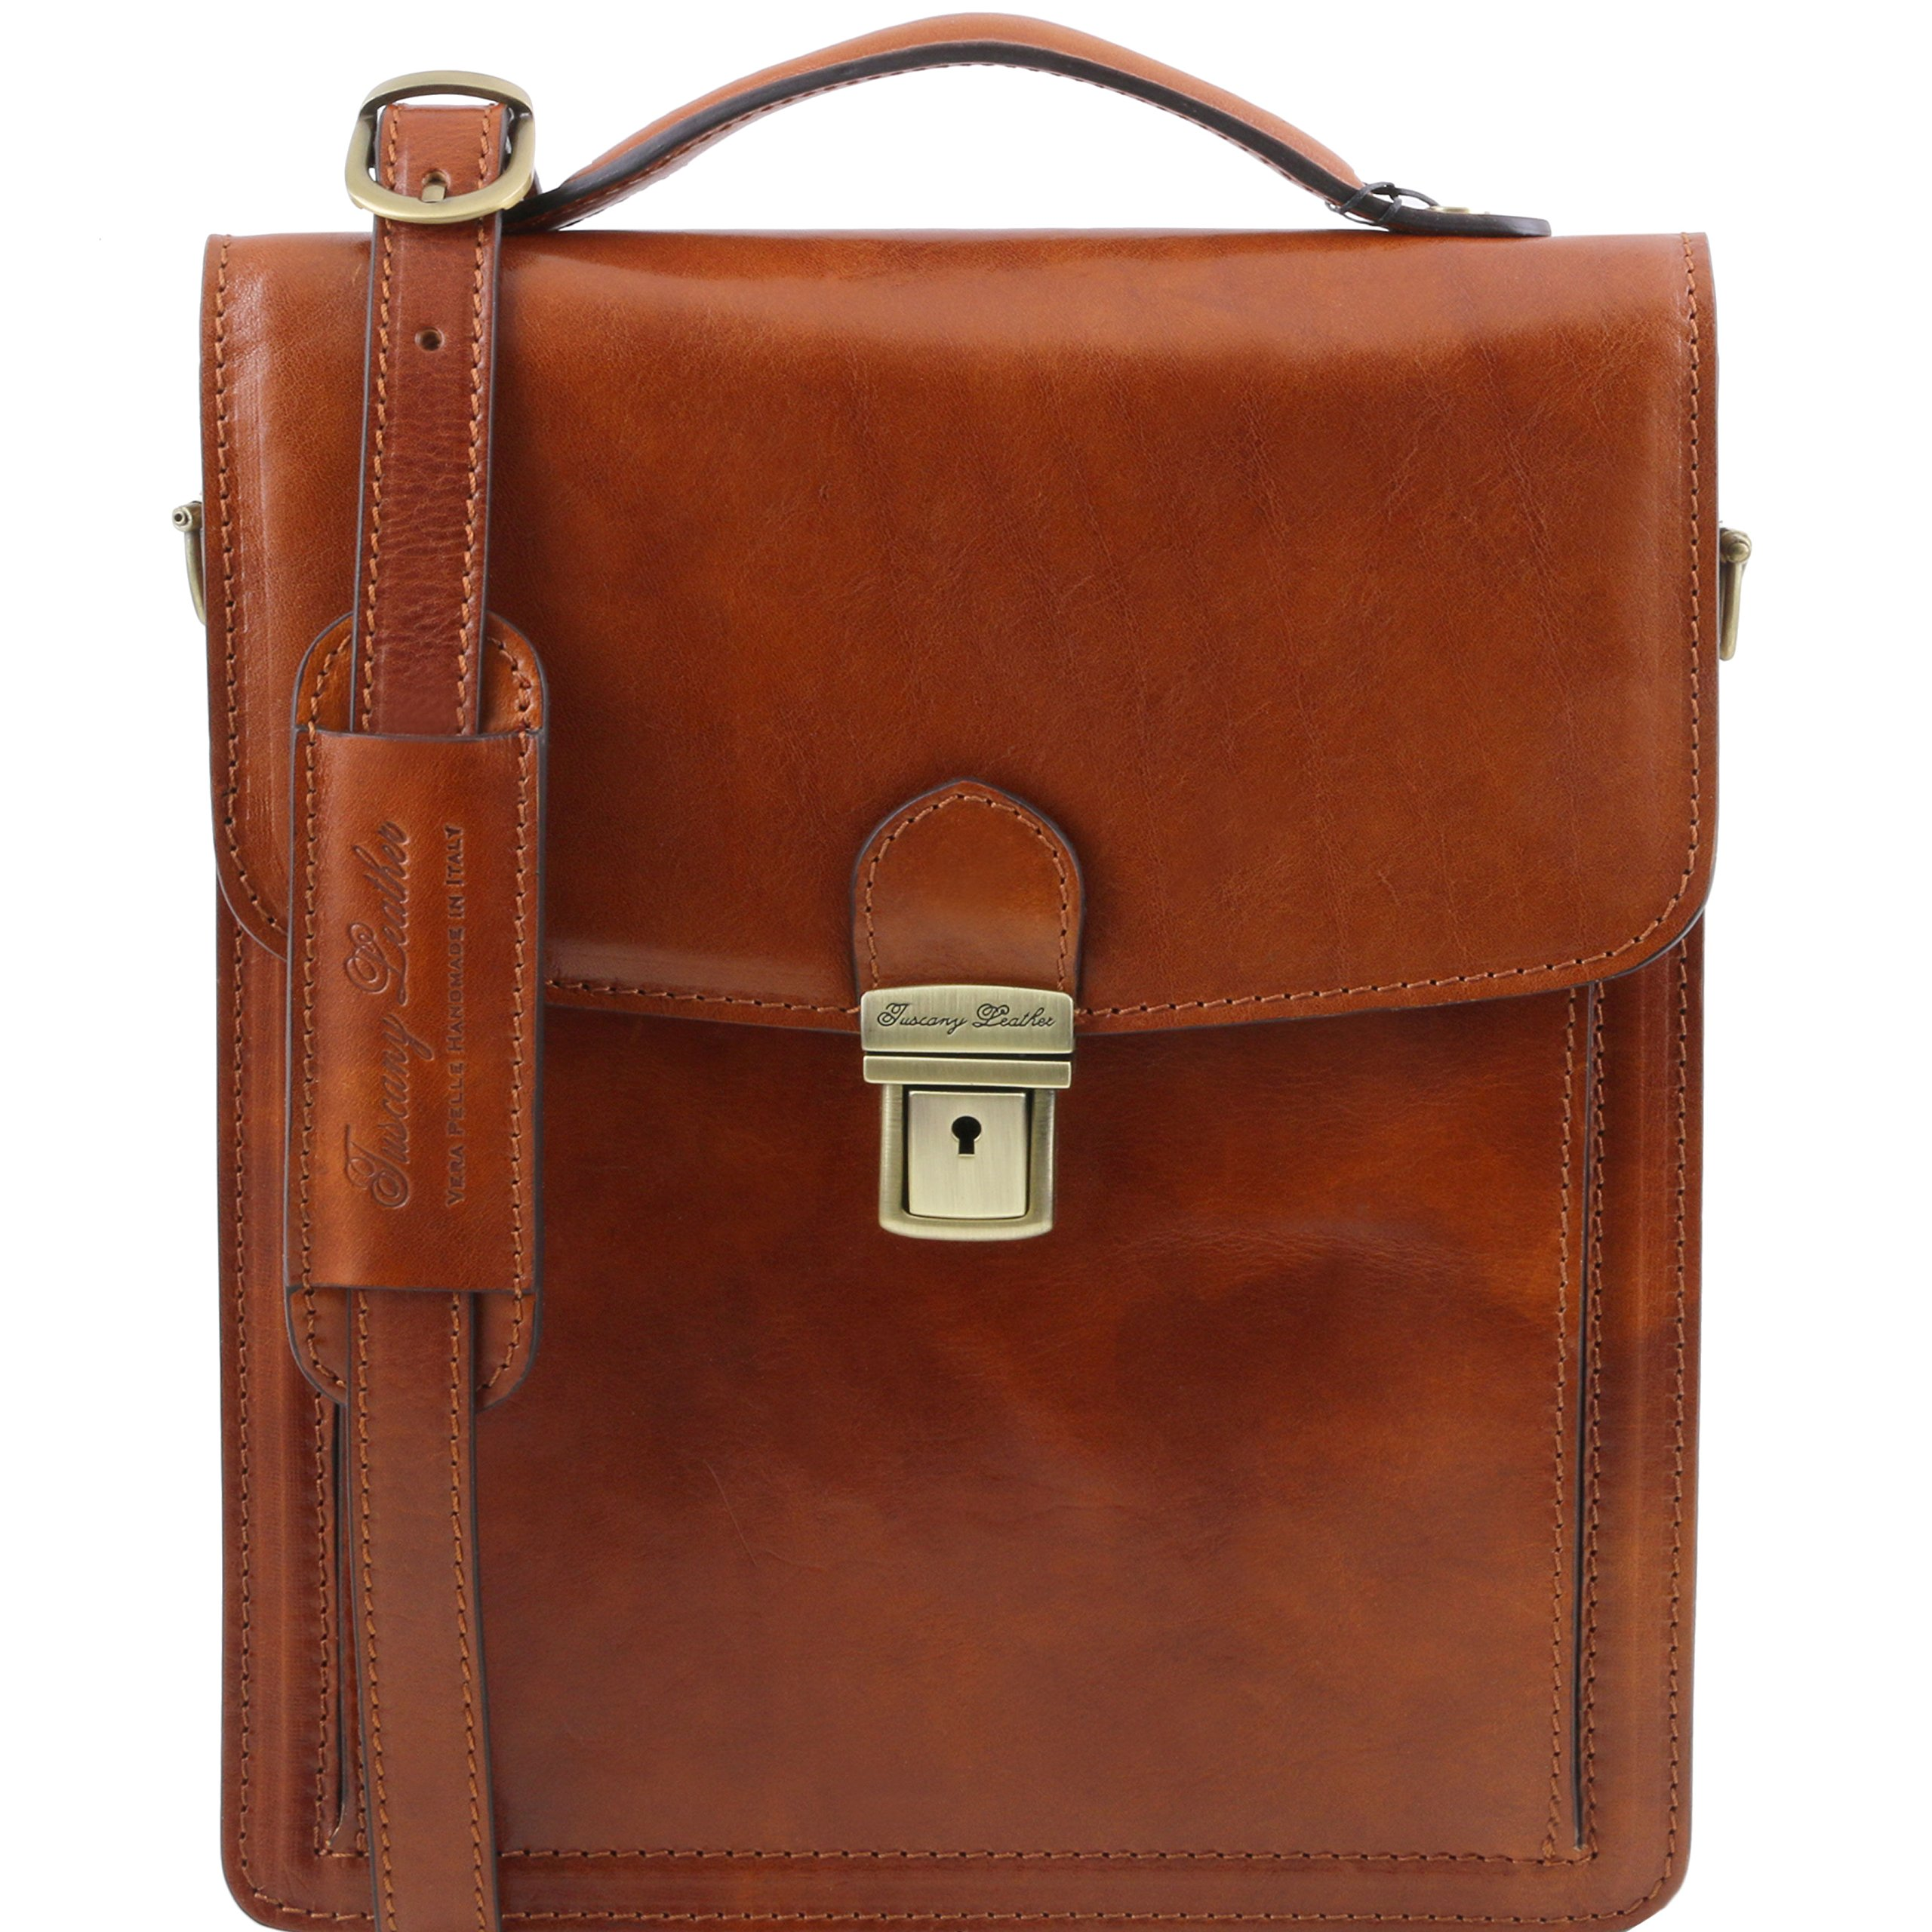 Tuscany Leather David Leather Crossbody Bag - large size Honey Leather bags for men